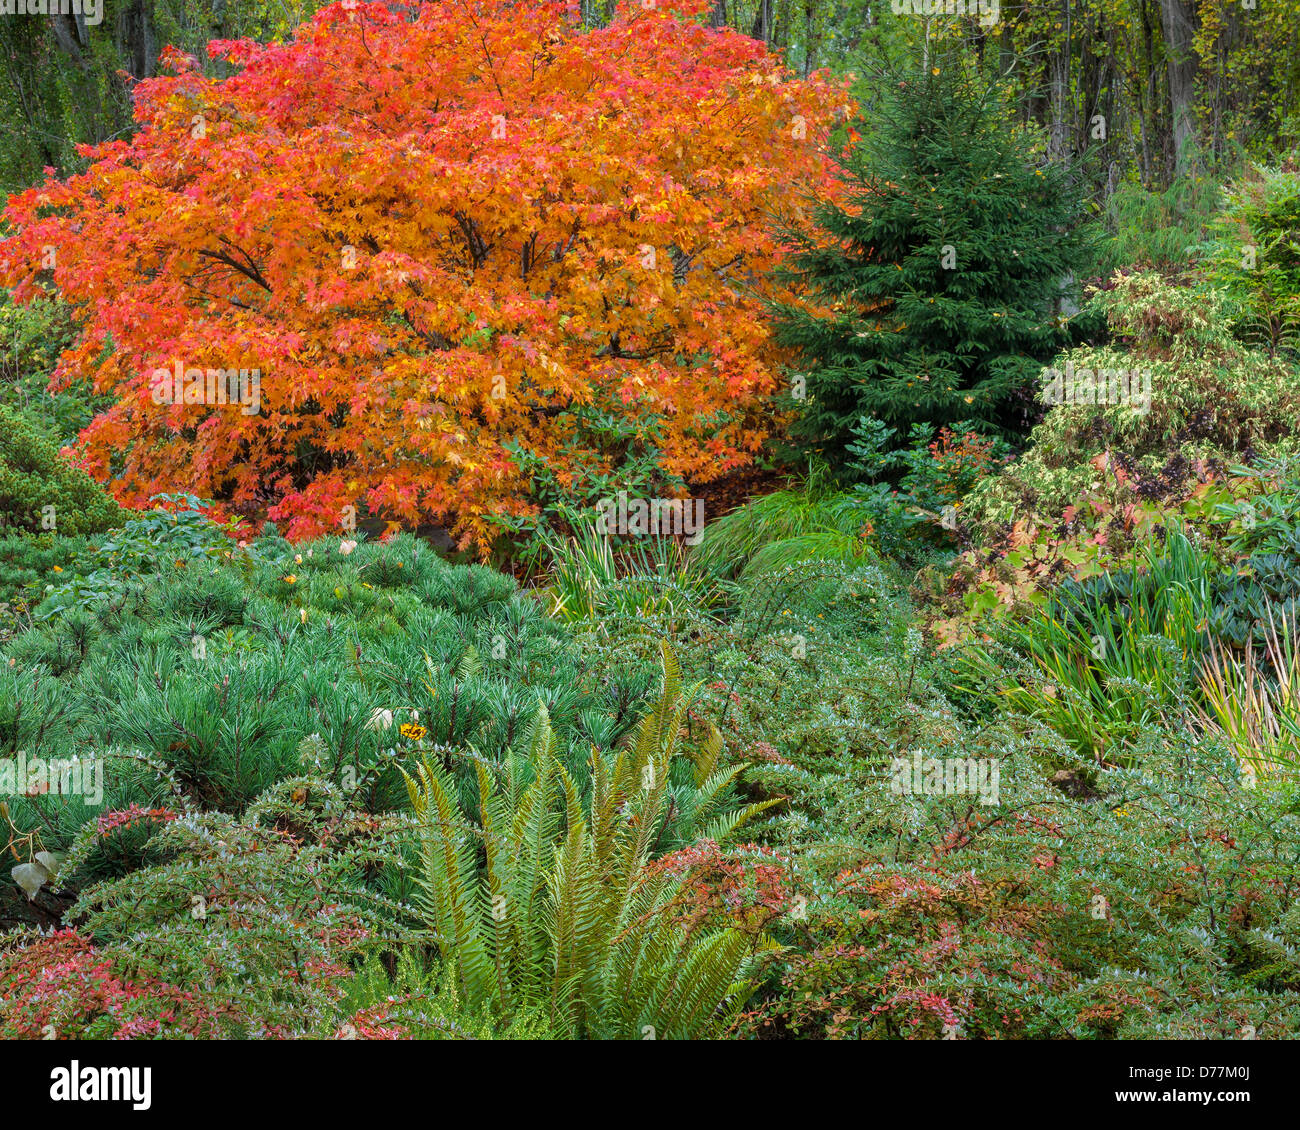 Kubota Garden, Seattle, WA: Japanese maple with fall foliage with low growing barberry, a snall pine and sword ferns - Stock Image